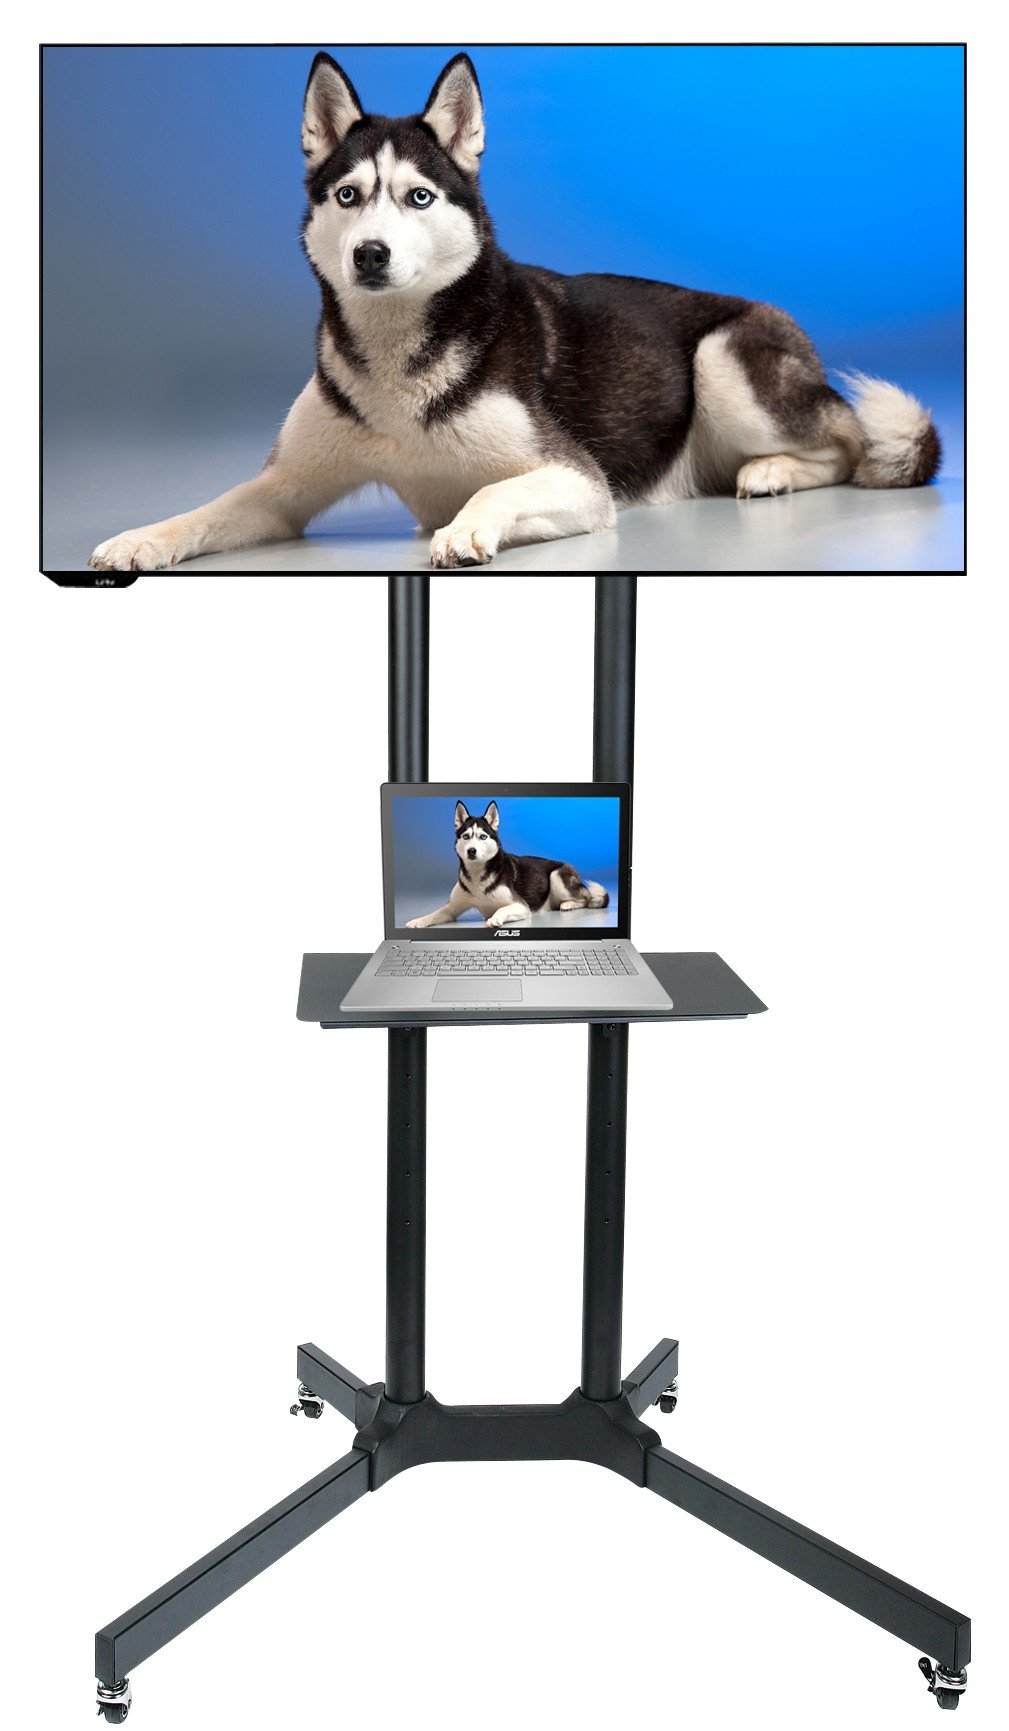 Husky Mount Mobile TV Stand with Wheels Heavy Duty Universal Rolling TV Cart Fits Most 32'' - 70'' LED LCD TVs with Shelf and Mount Max Load 132 LBS Load Capacity TV Trolley by Husky Mounts